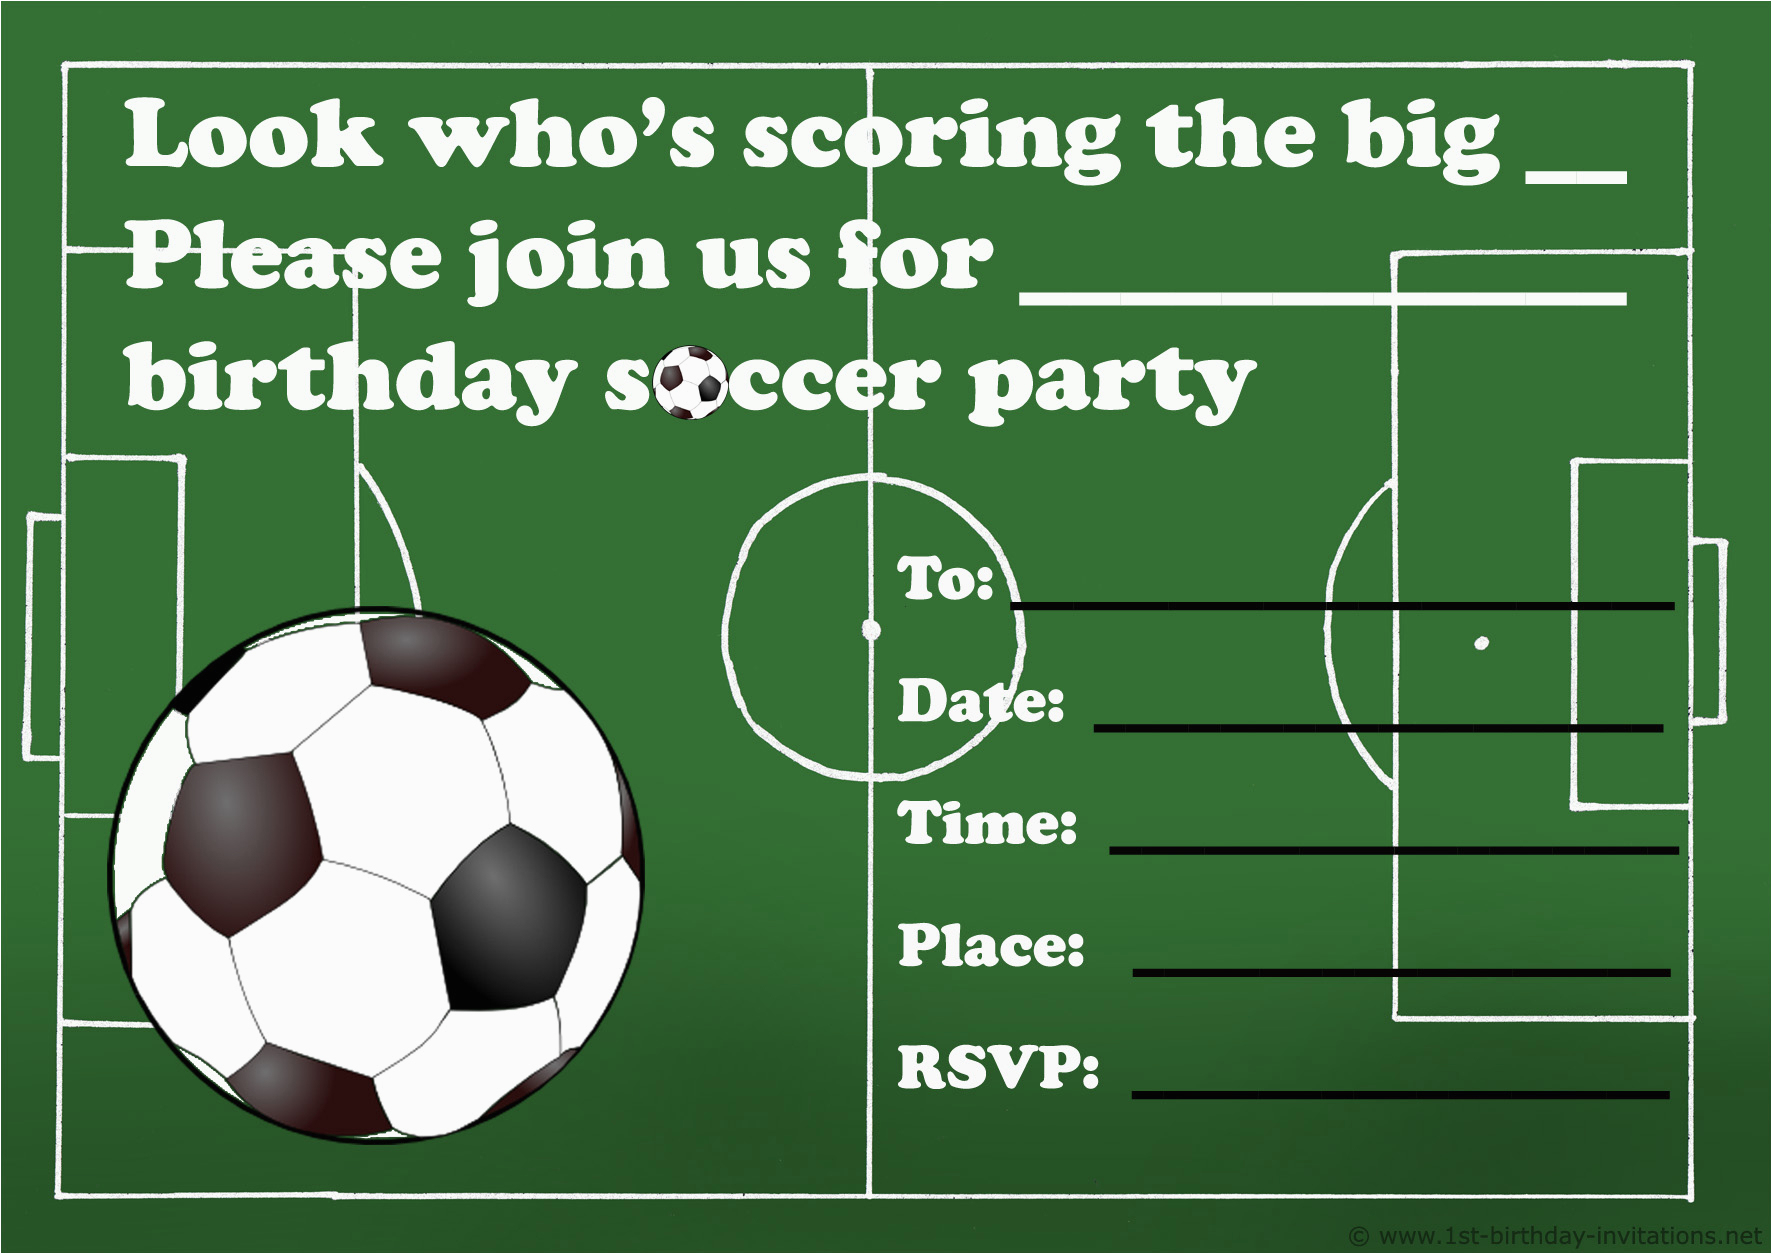 Soccer Invitations For Birthday Party | Birthdaybuzz - Free Printable Soccer Birthday Invitations